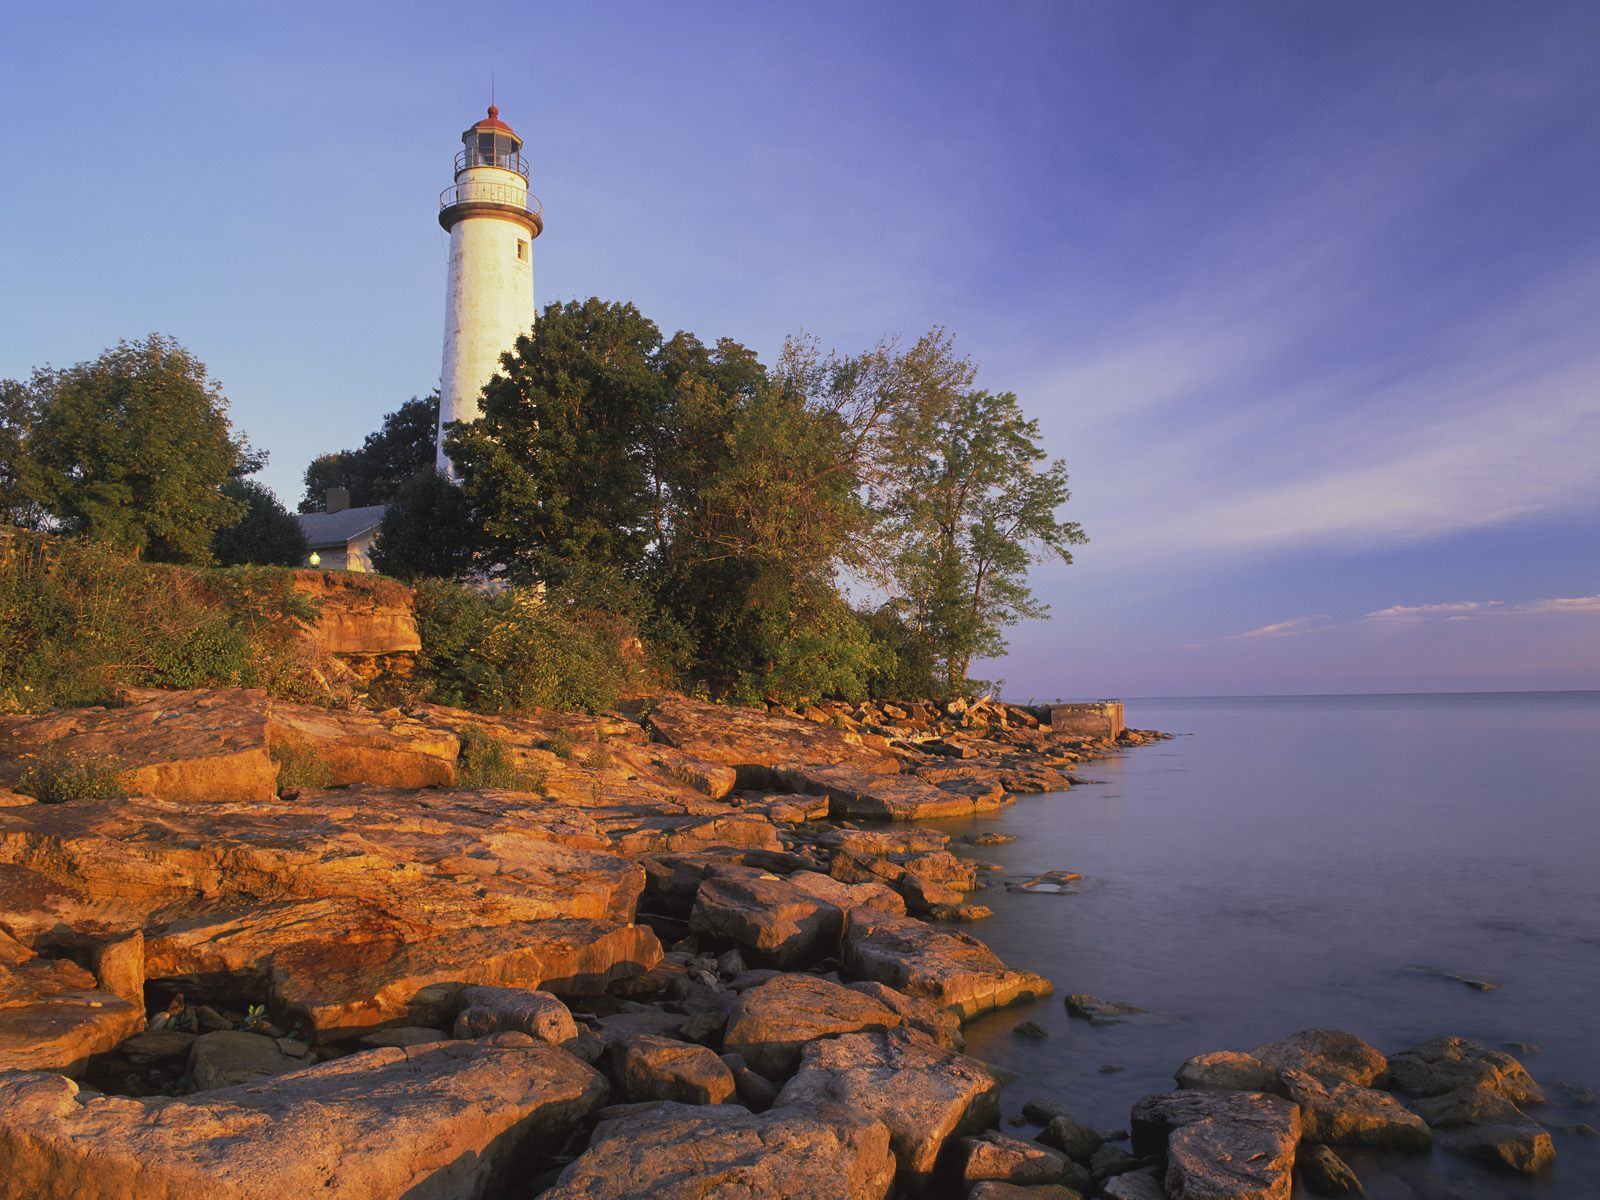 Pointe_Aux_Barques_Lighthouse_Lake_Huron_Michigan